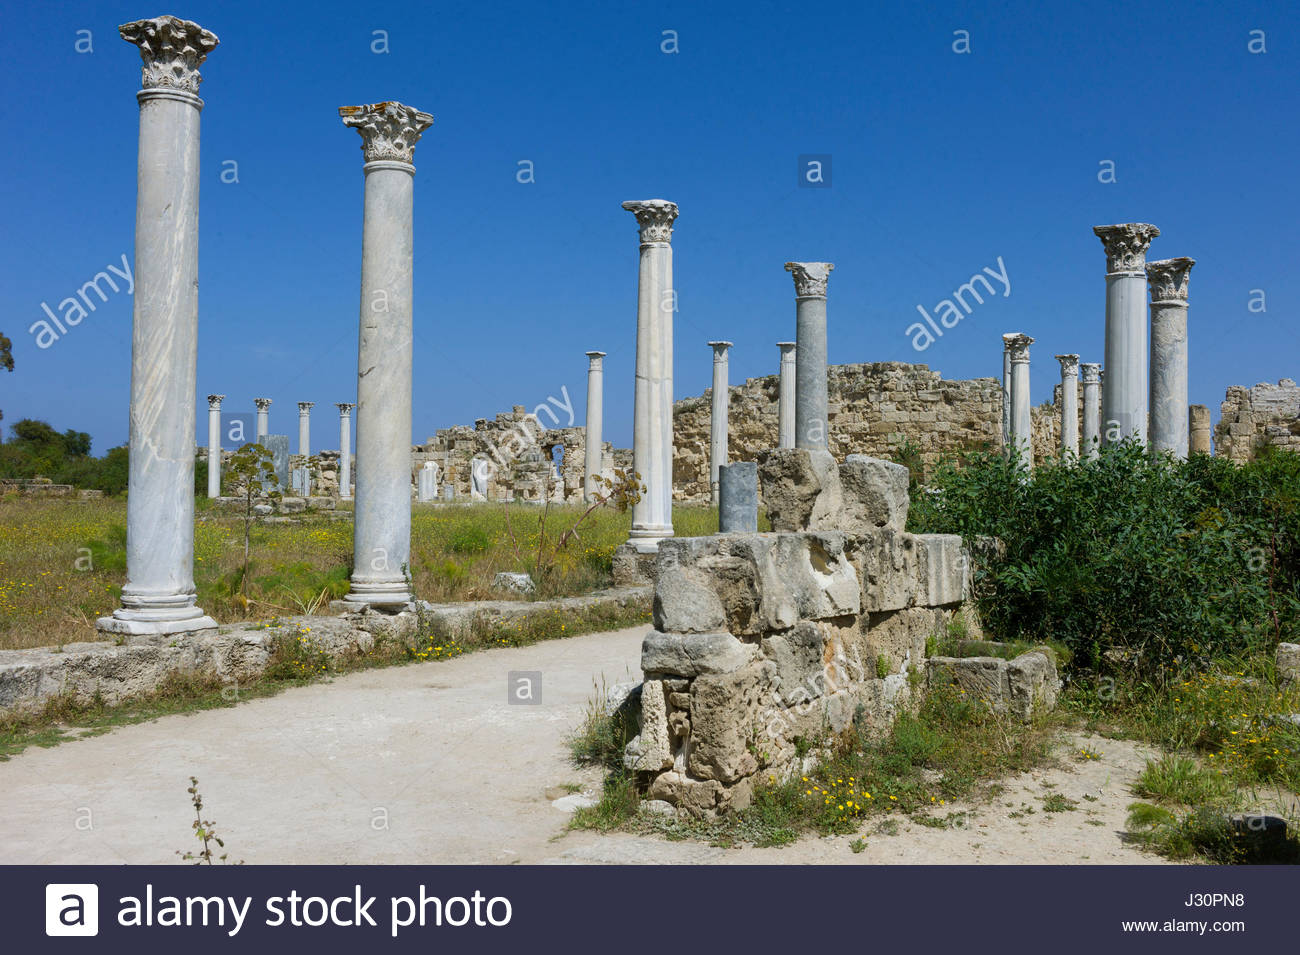 Marble columns standing in the ruined ancient city of Salamis, north Cyprus Stock Photo